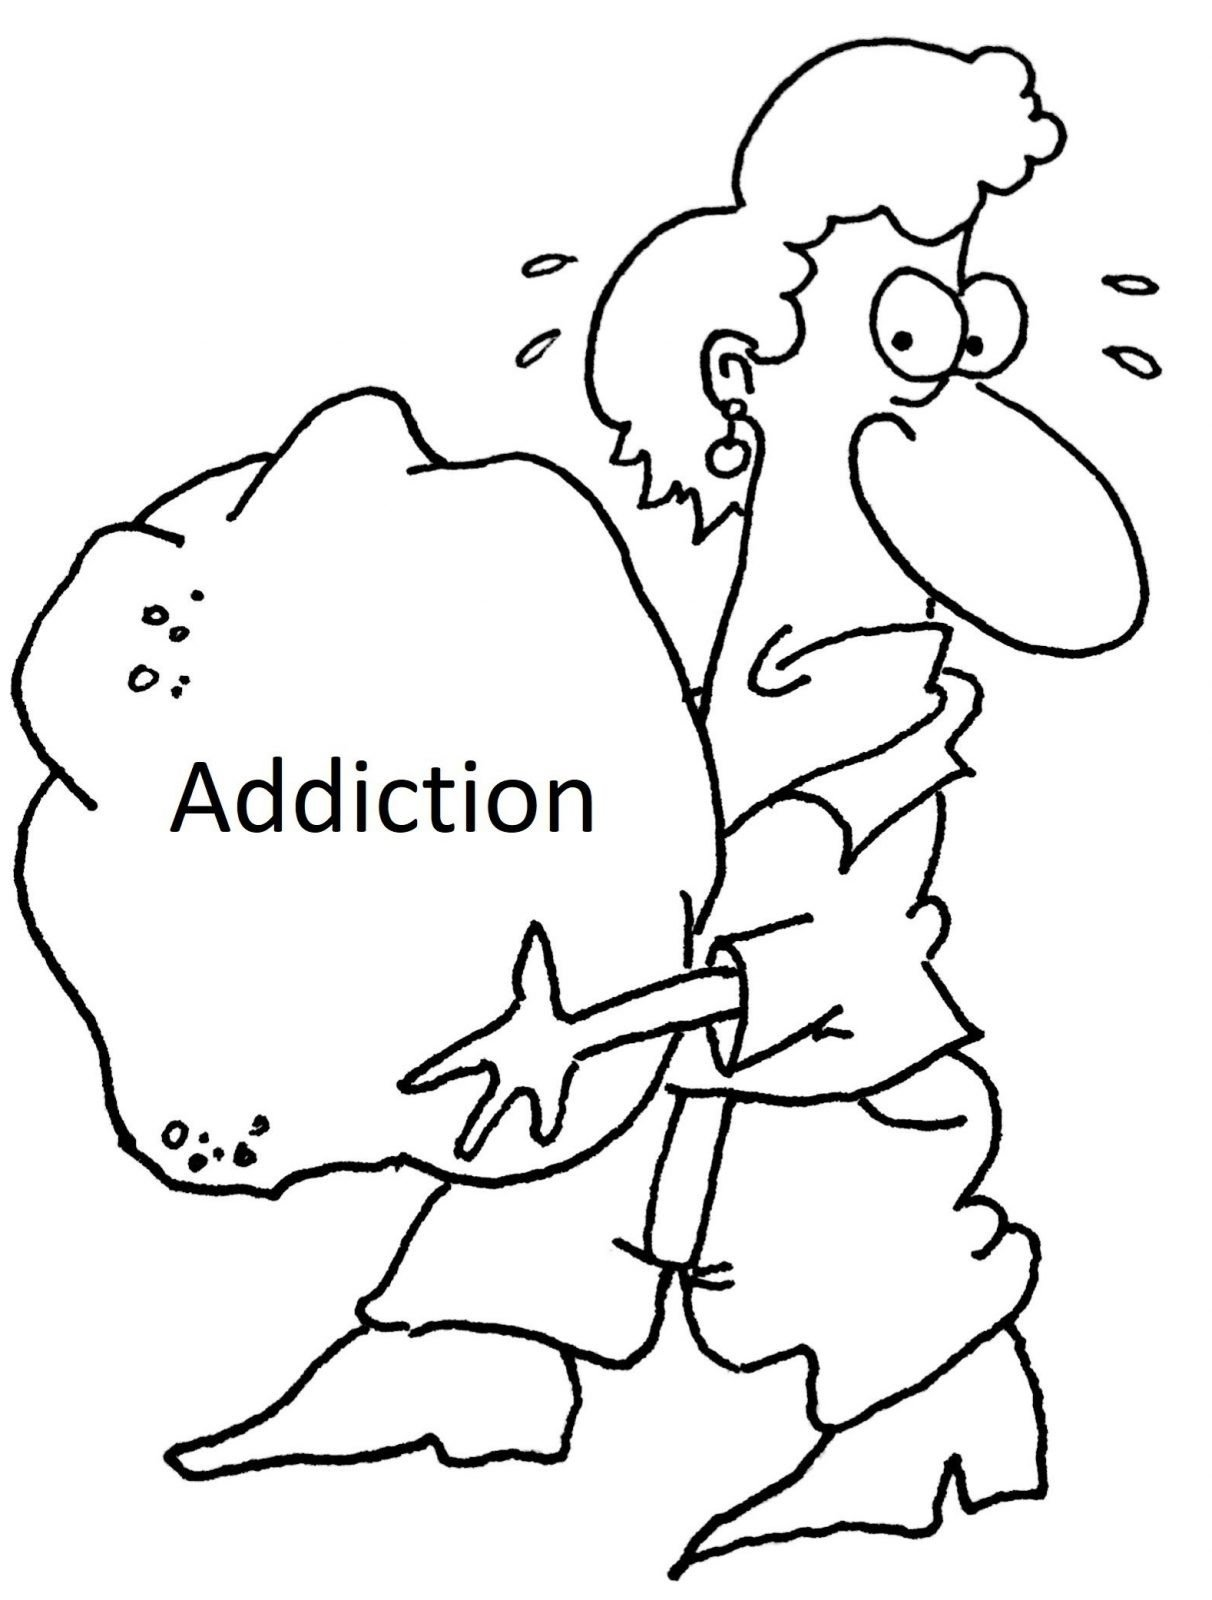 Woman carry rock addiction